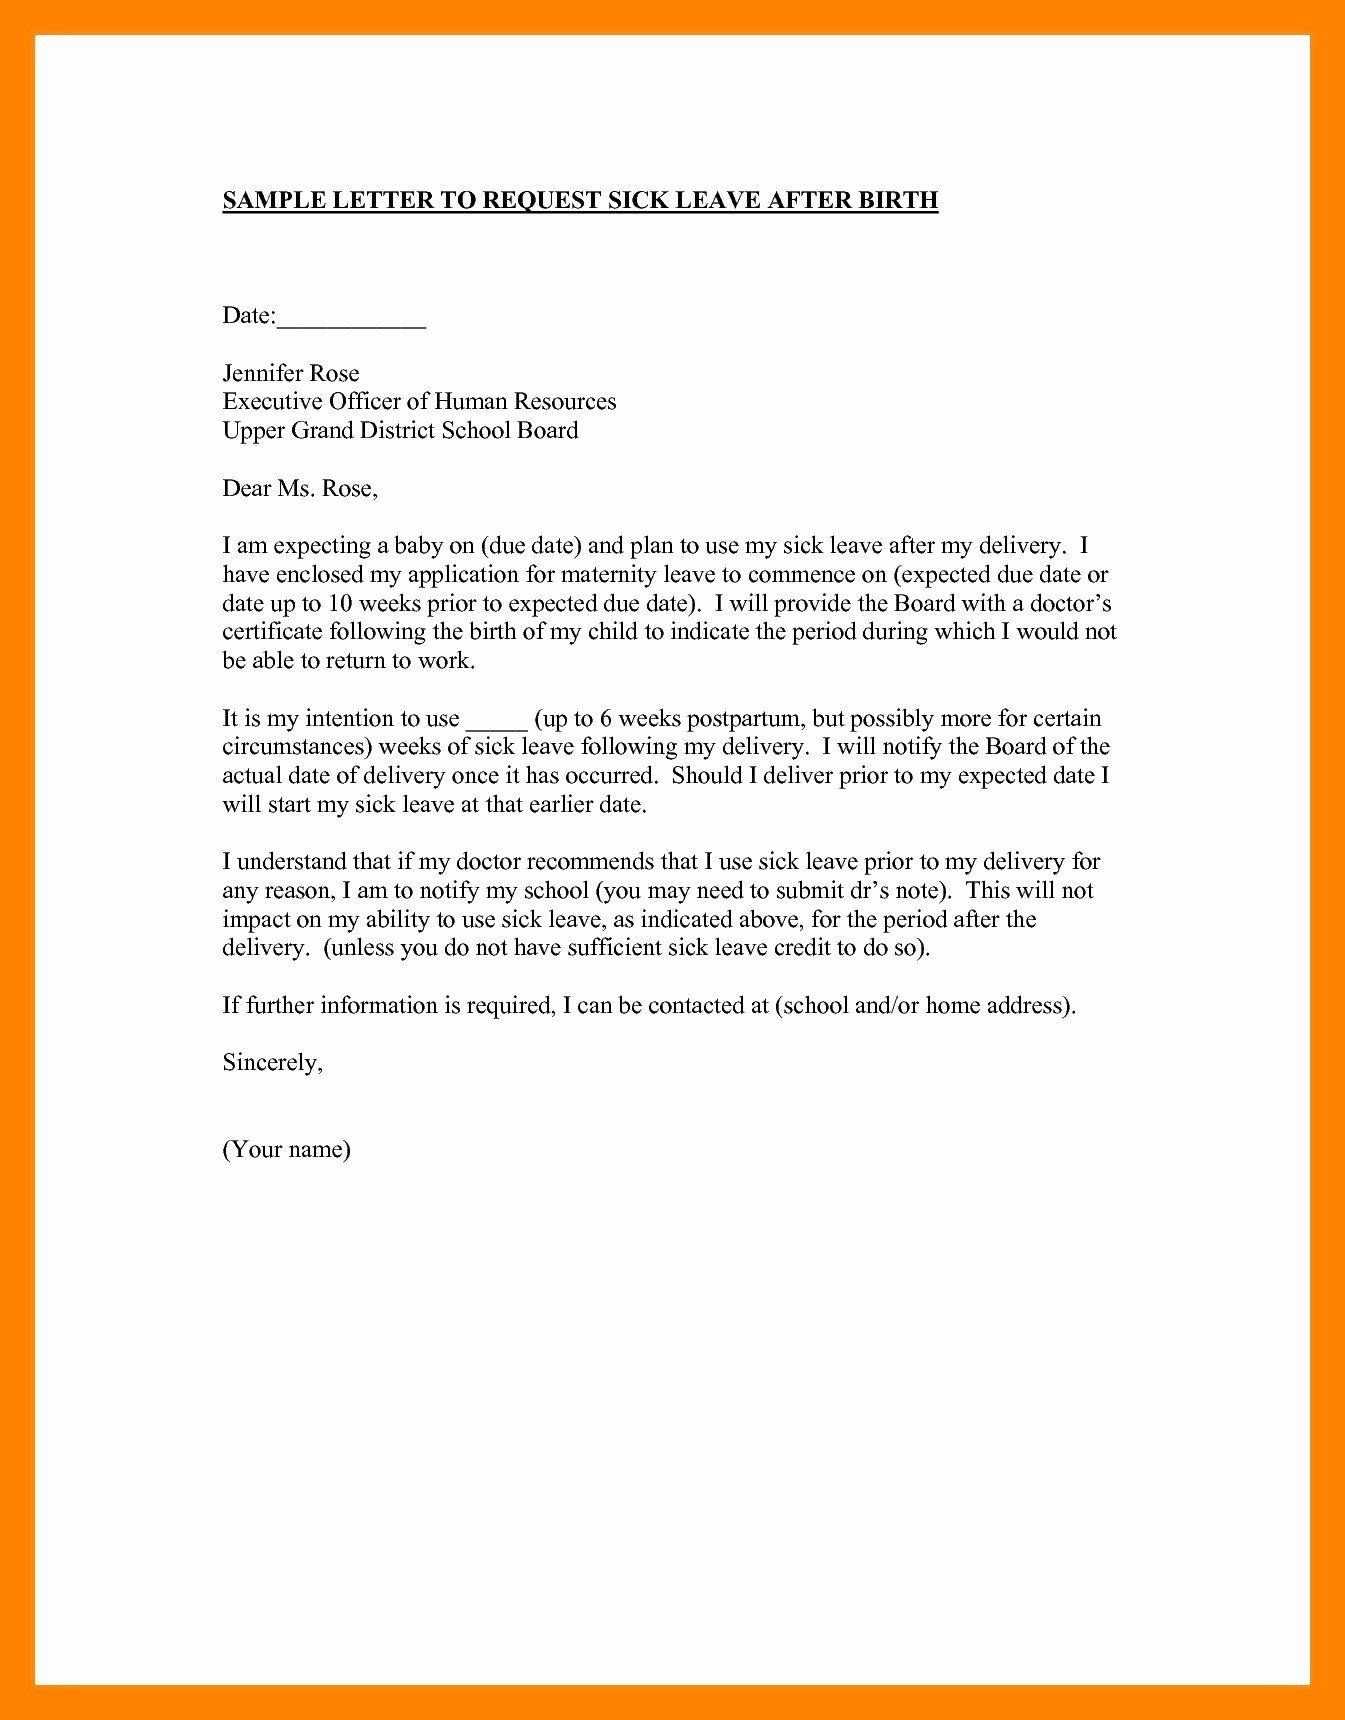 Leave Of Absence Letter for Personal Reasons Inspirational 10 Leave Letter for Personal Reasons Sample